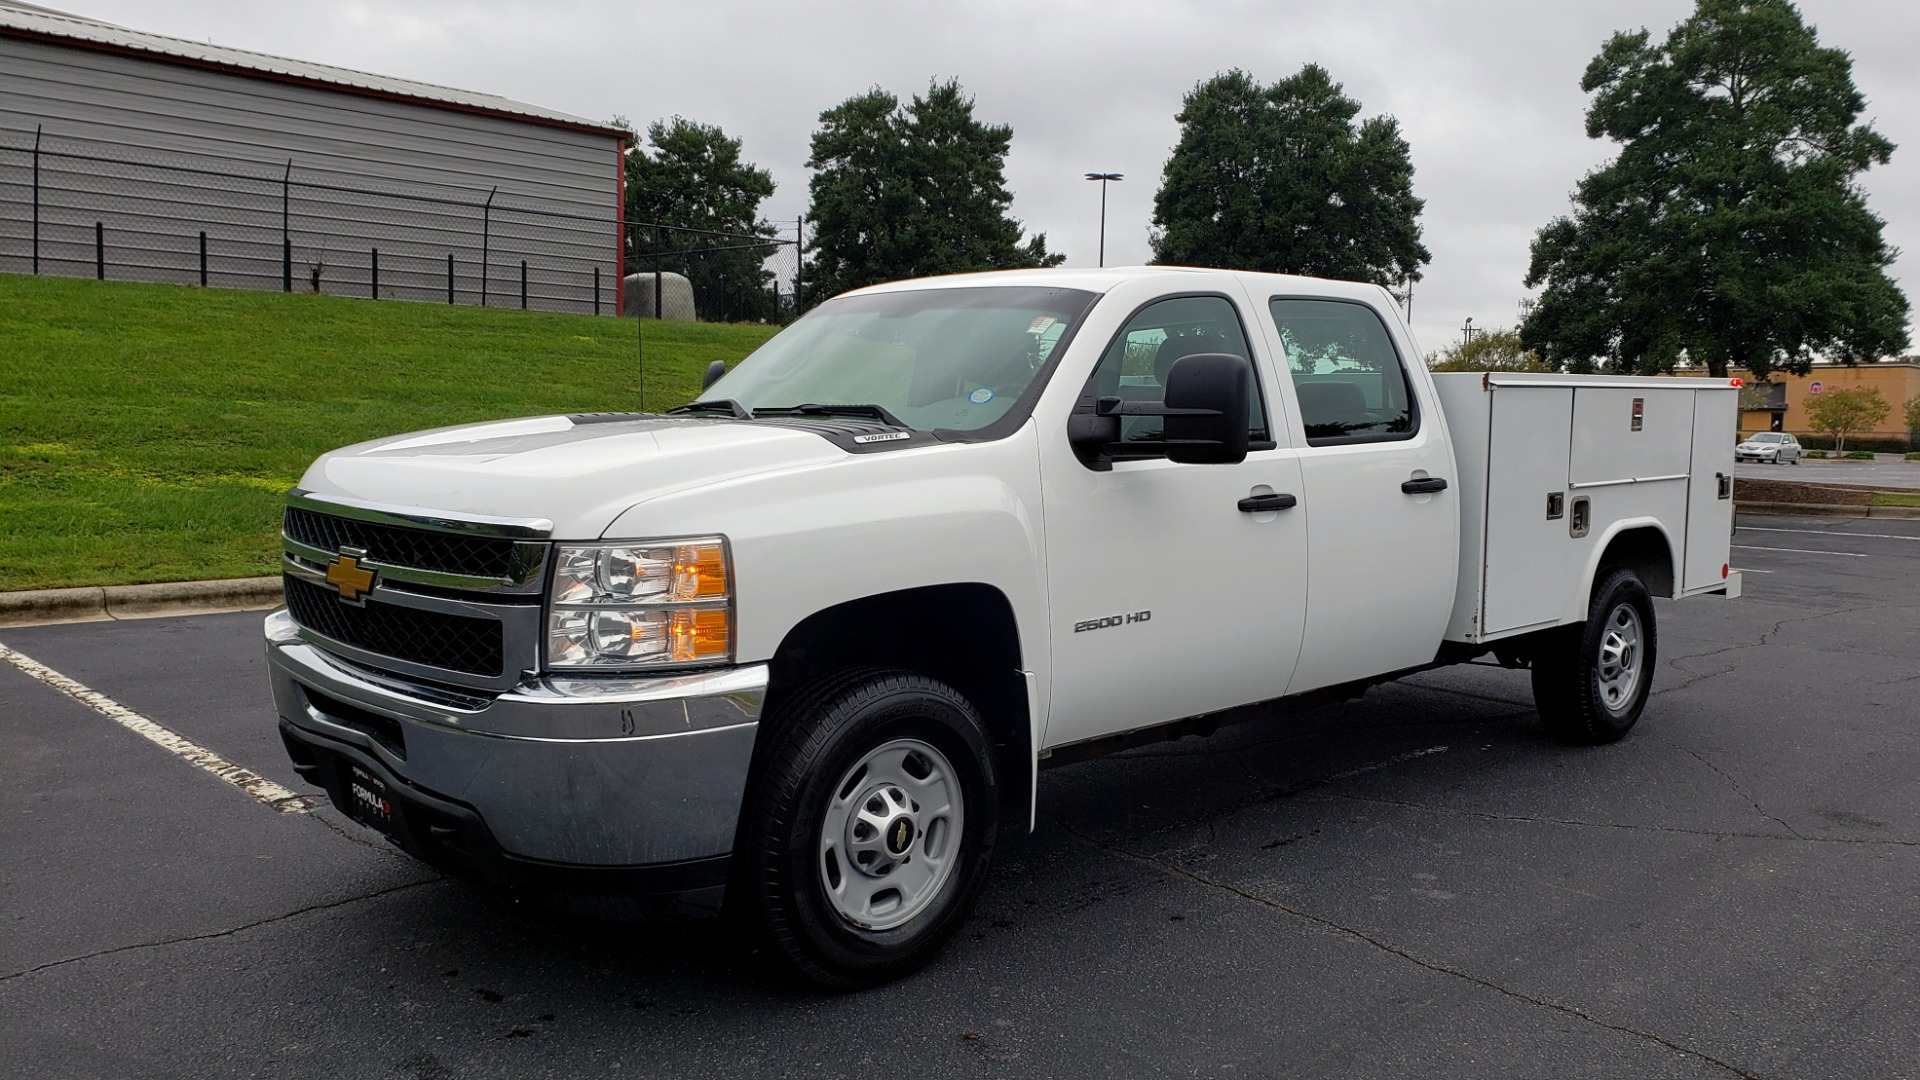 Used 2014 Chevrolet SILVERADO 2500HD WORK TRUCK 4WD / 6.0L V8 / AUTO / TOOL BOX / CLEAN for sale Sold at Formula Imports in Charlotte NC 28227 1